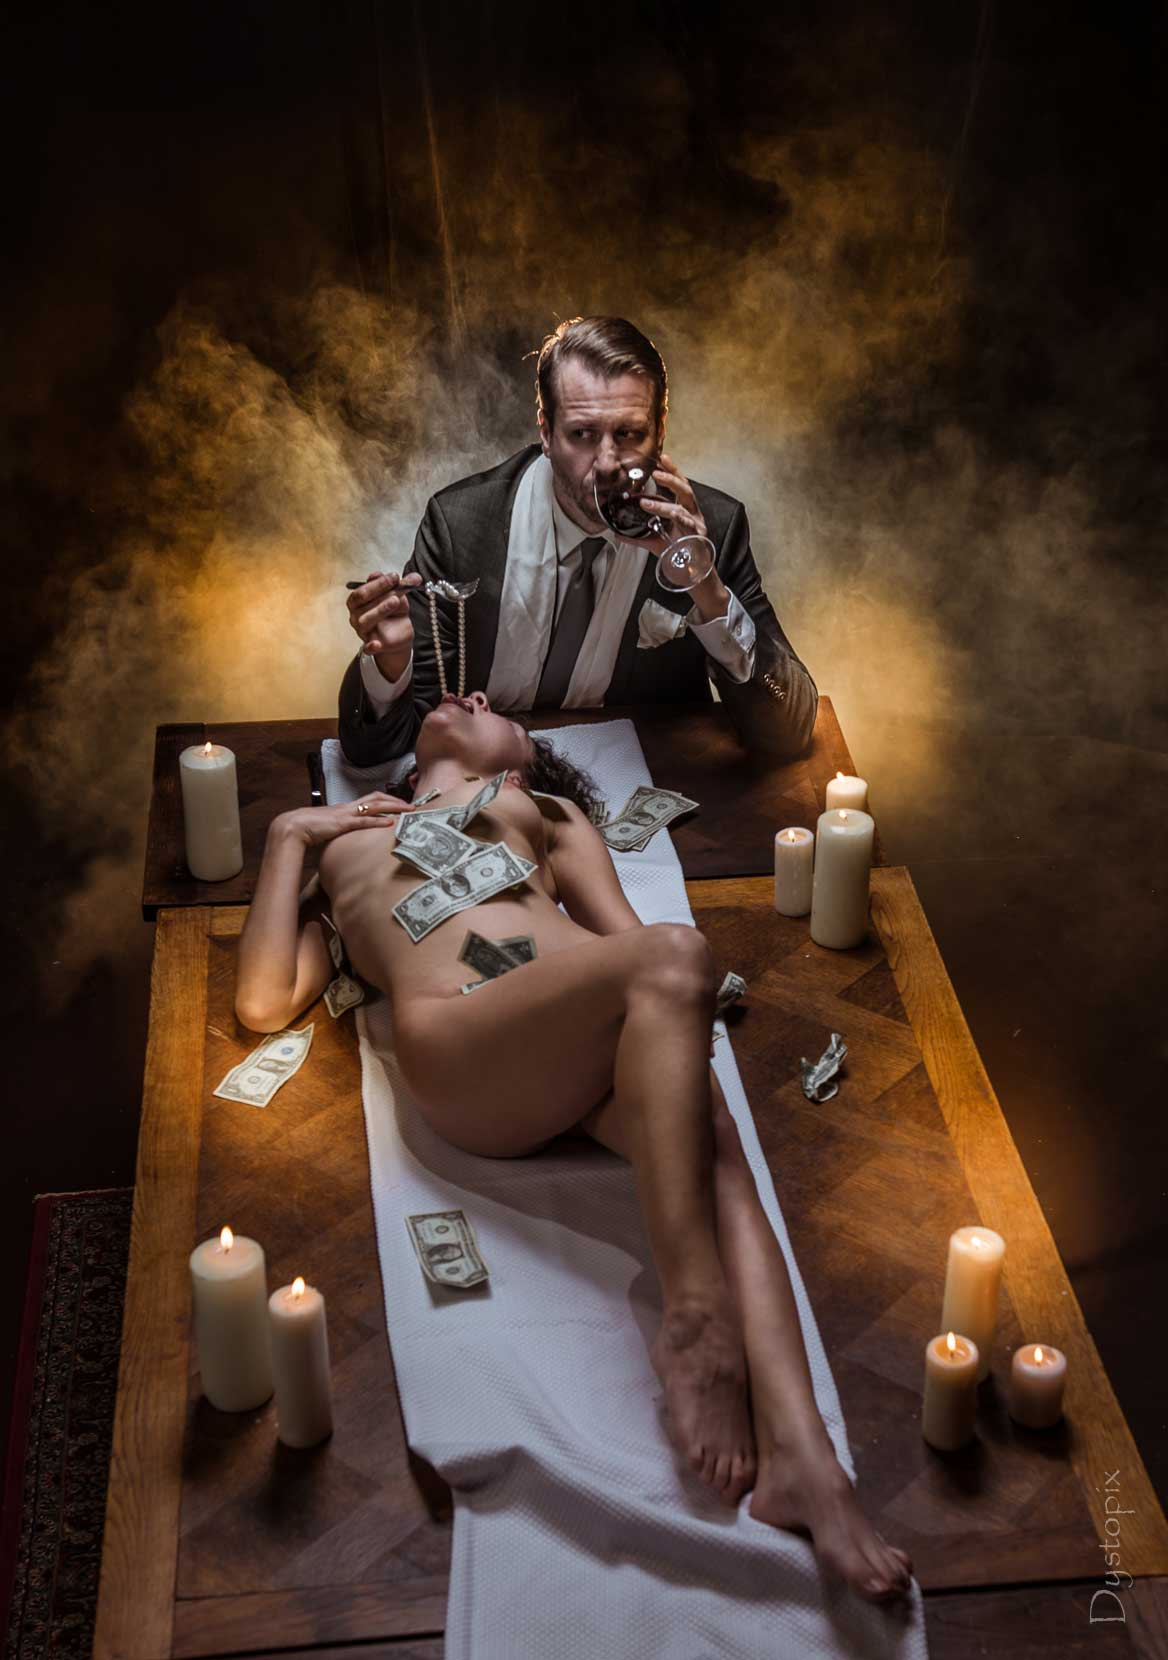 Man eating dinner with a woman nude on the table